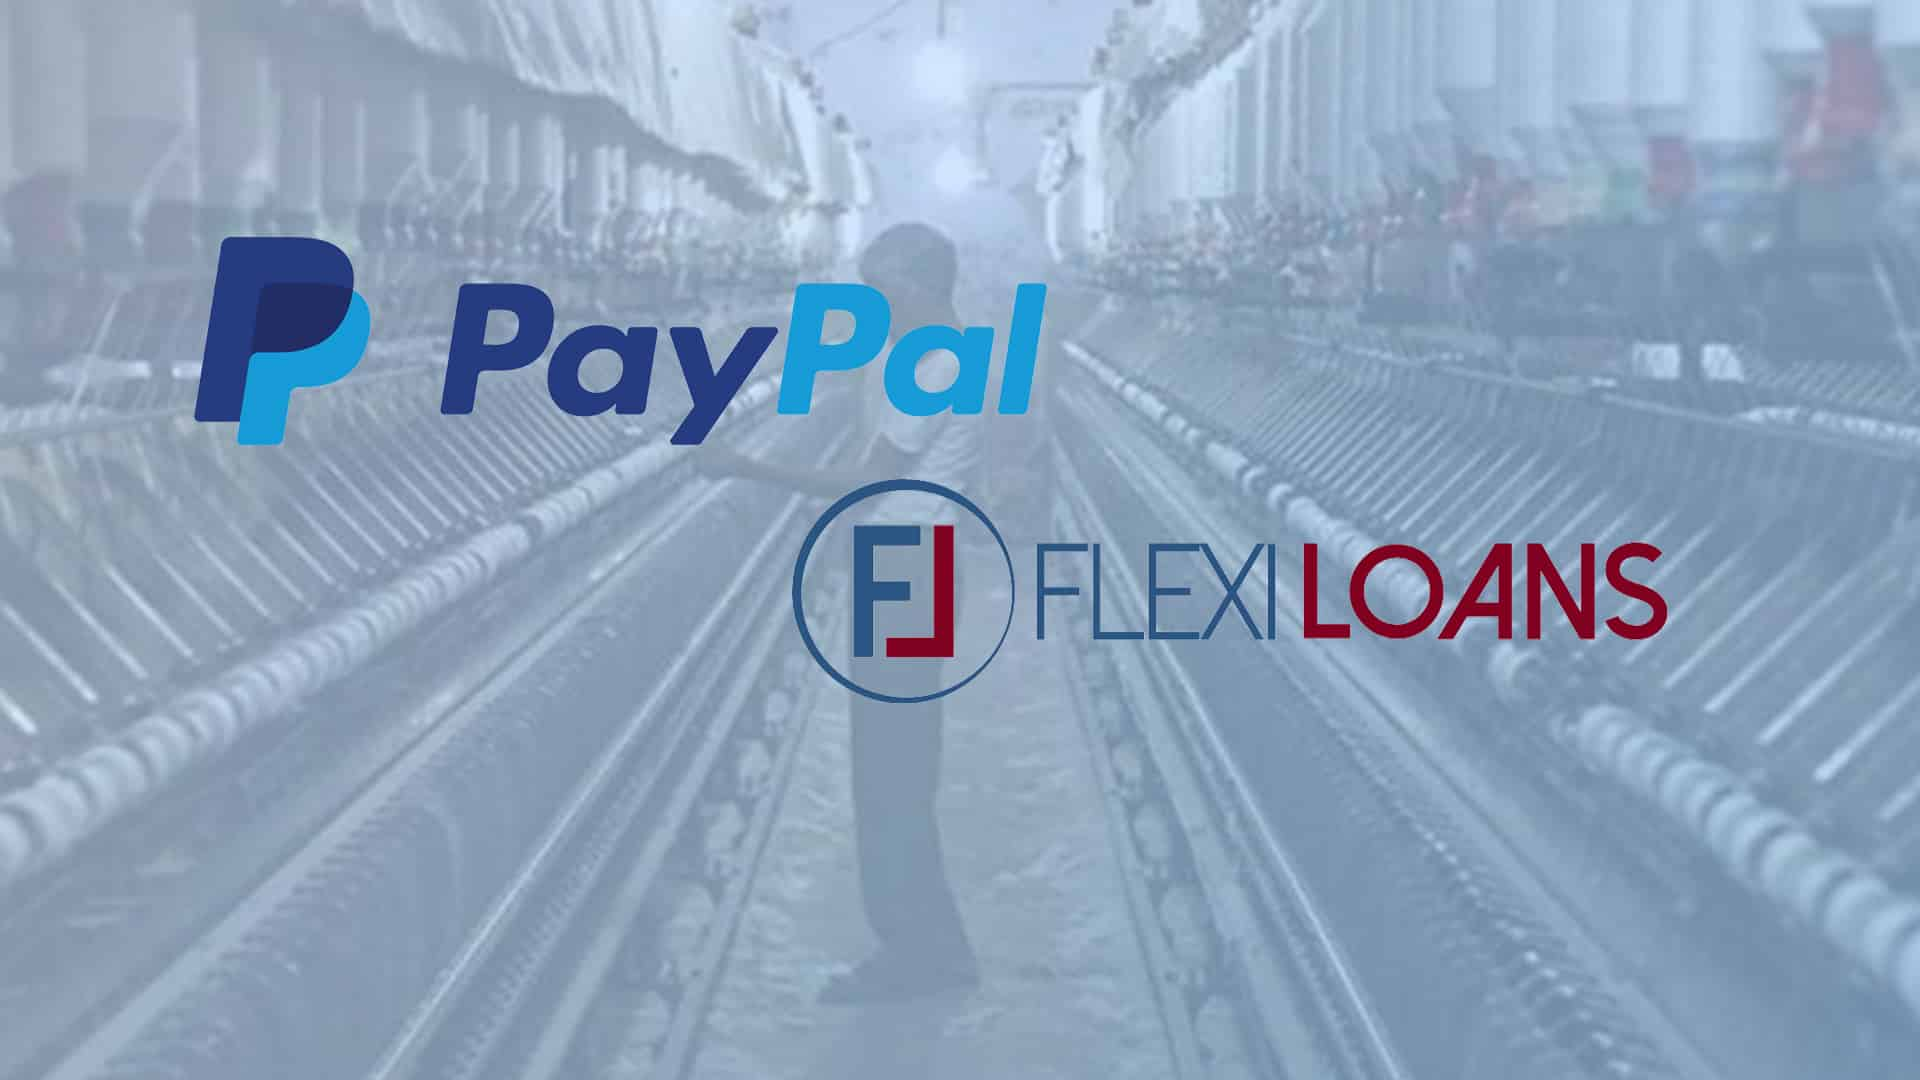 PayPal, FlexiLoans.com join hands to offer collateral-free loans to MSMEs